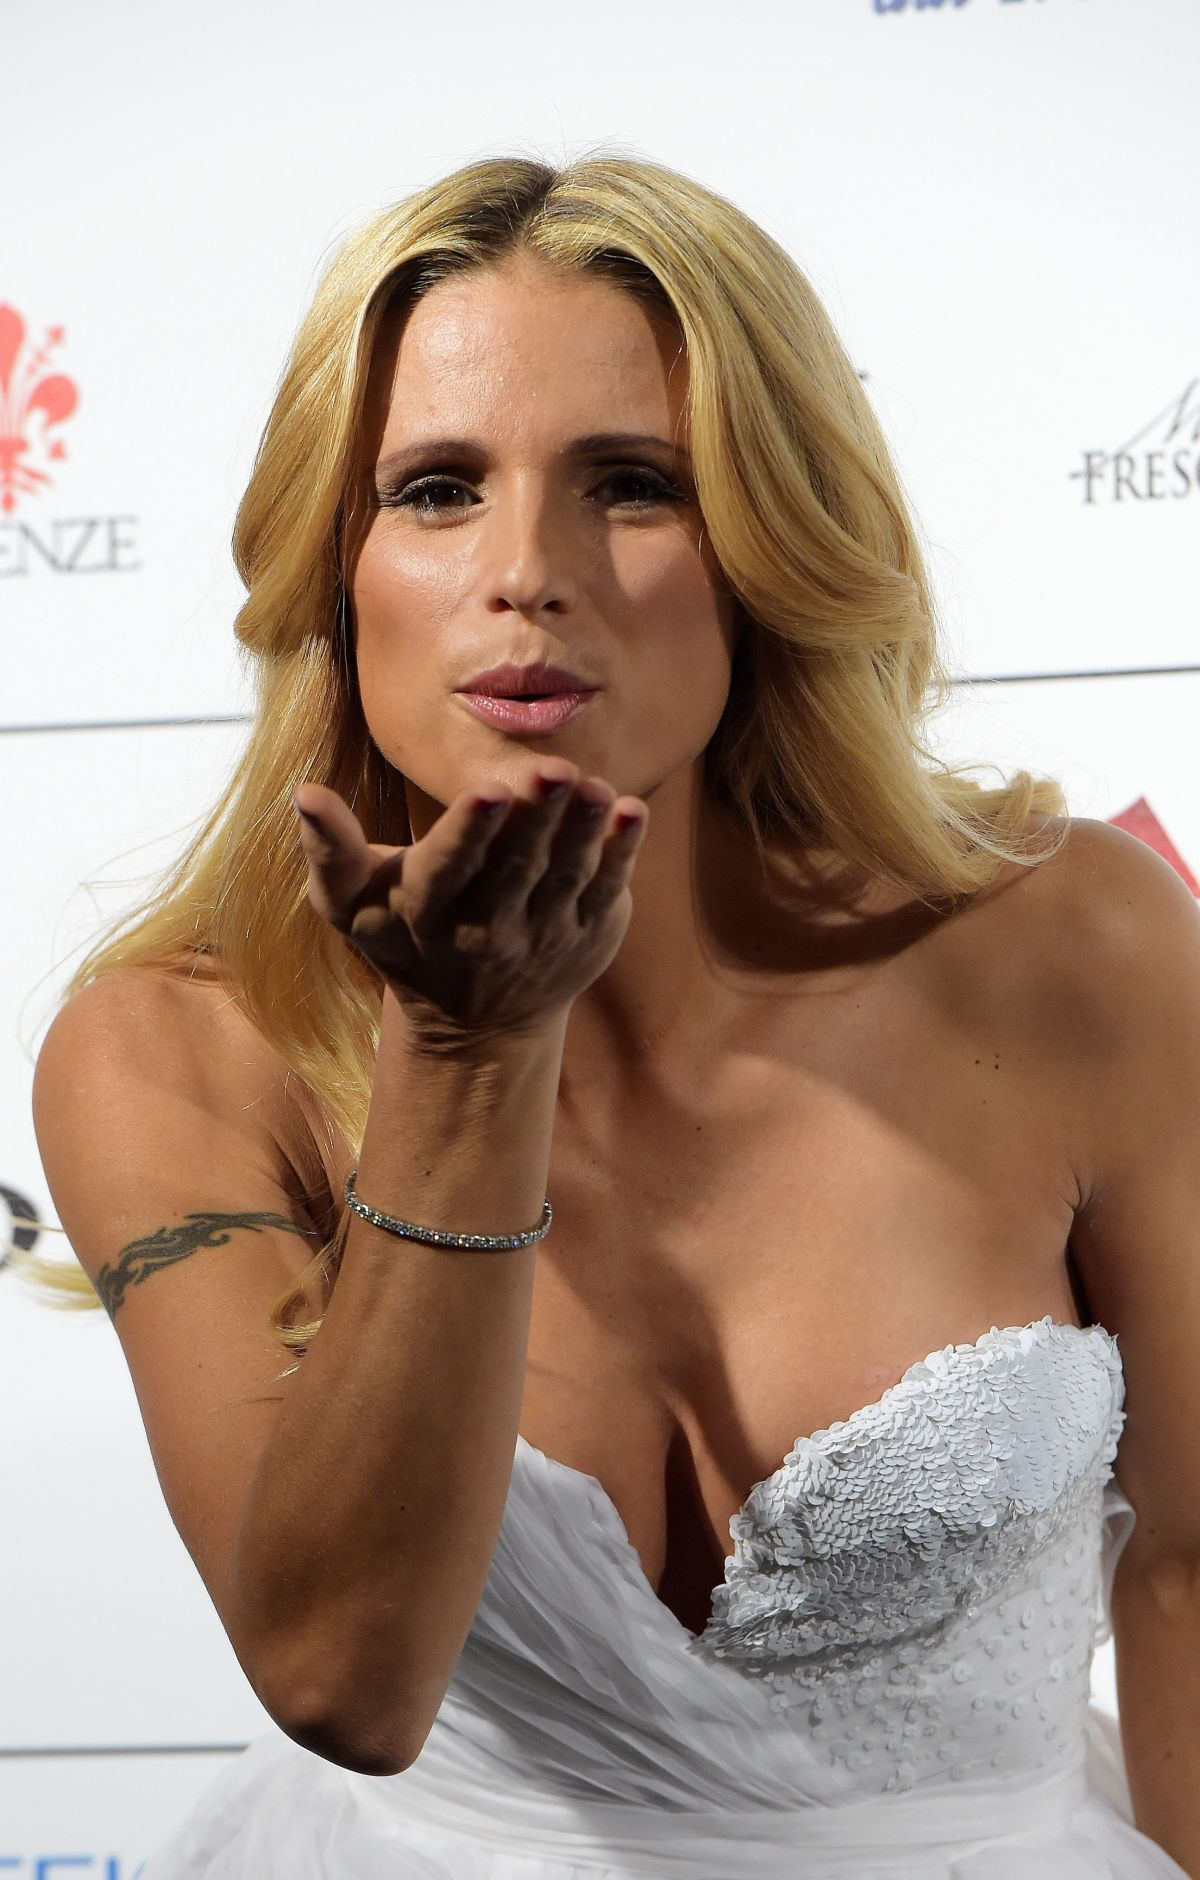 MICHELLE HUNZIKER at Celebrity Fight nNight in Florence